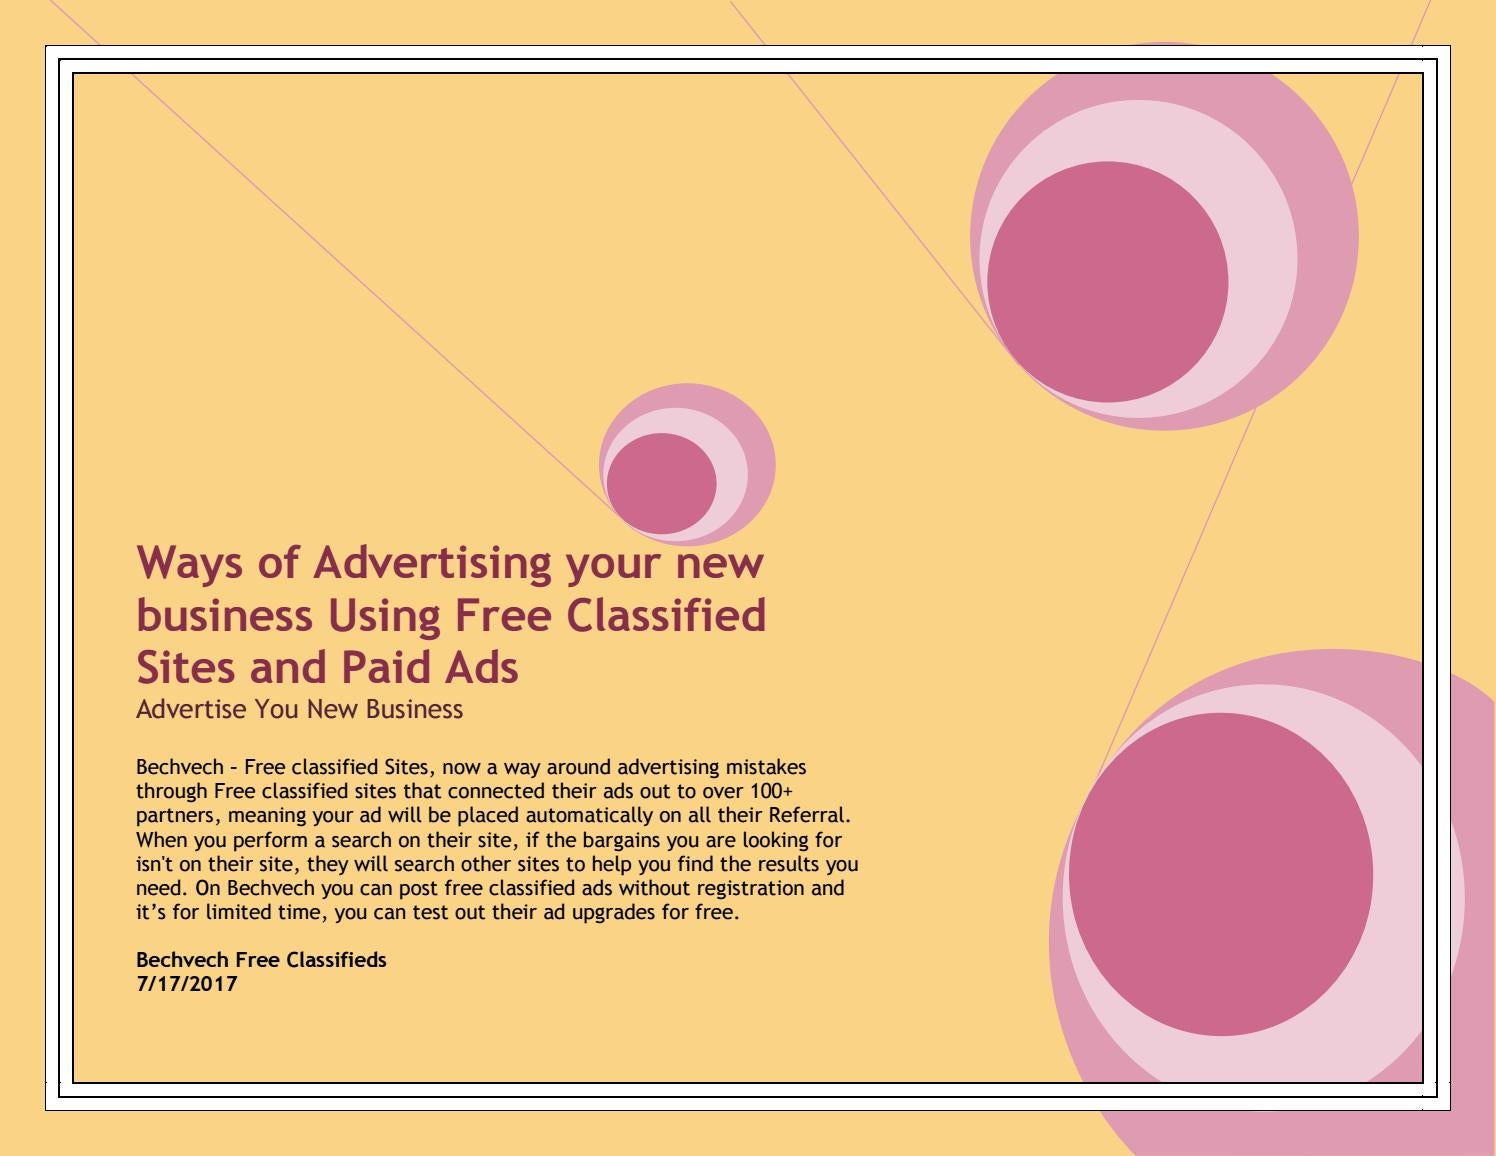 Ways of Advertising your new business Using Free Classified